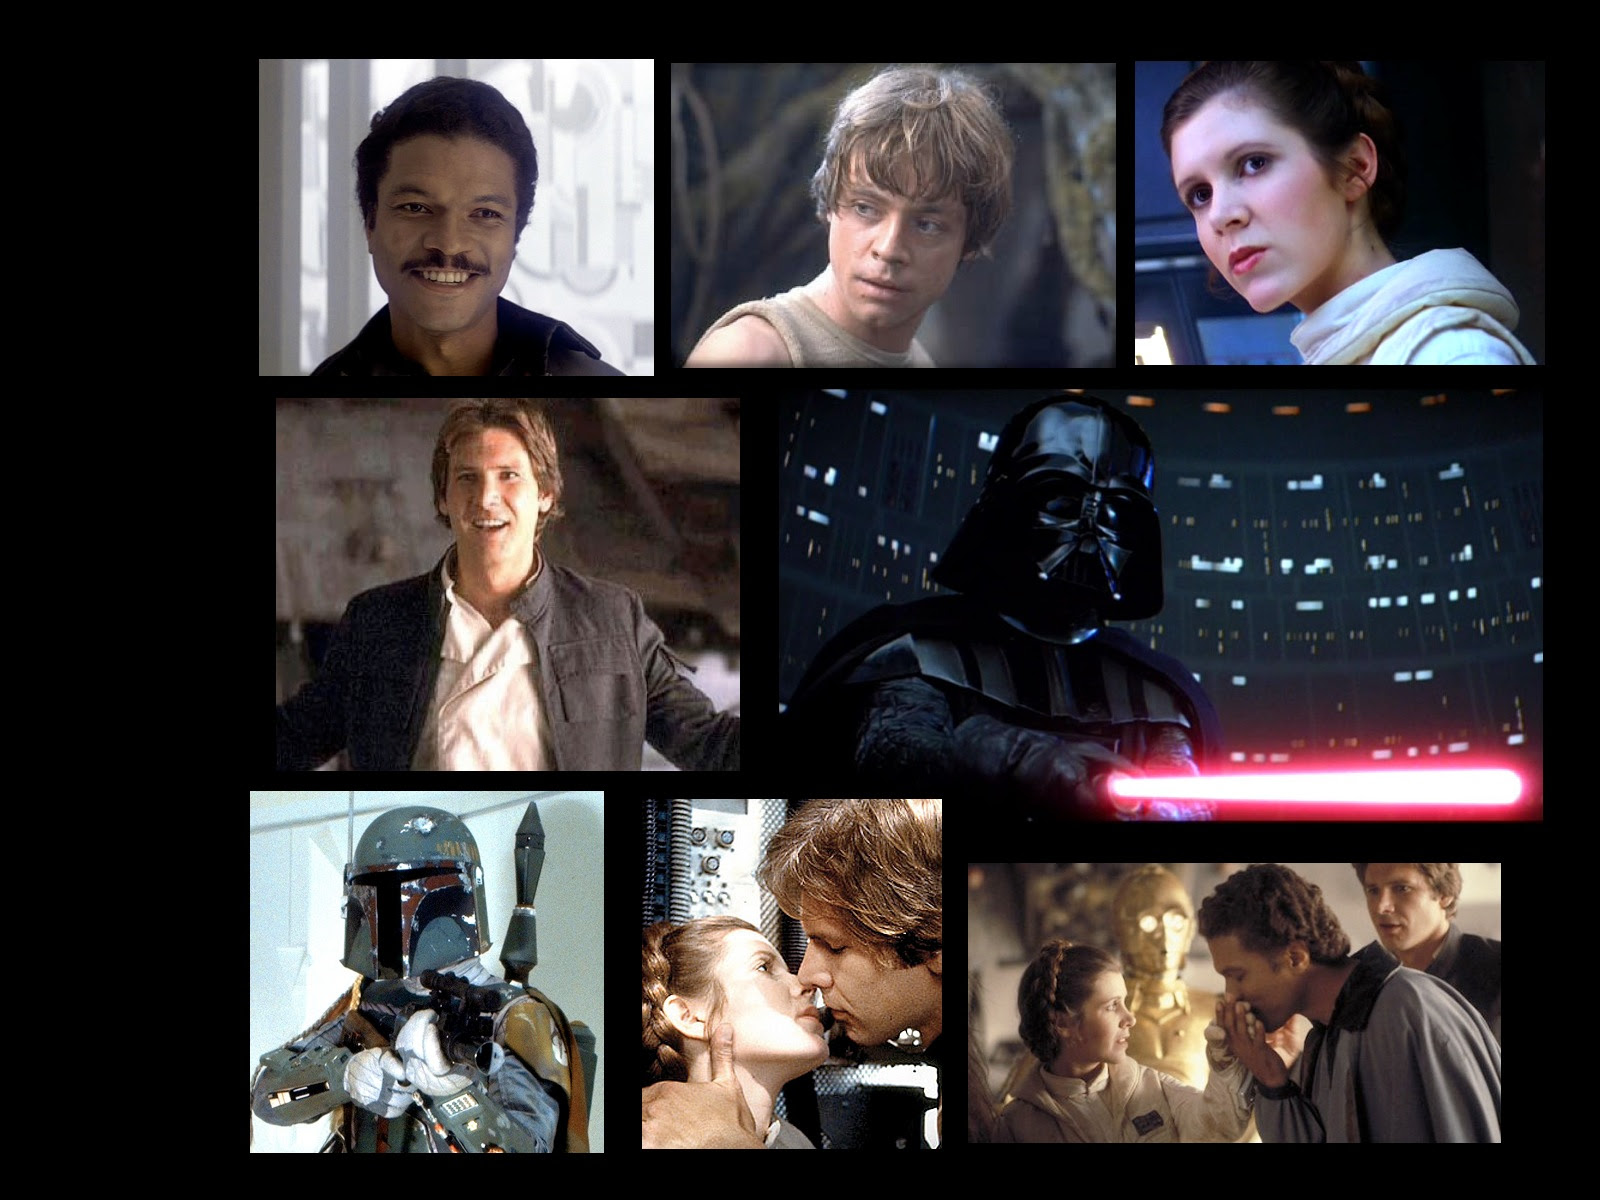 Heroes And Villains Star Wars Empire Strikes Back Wallpaper